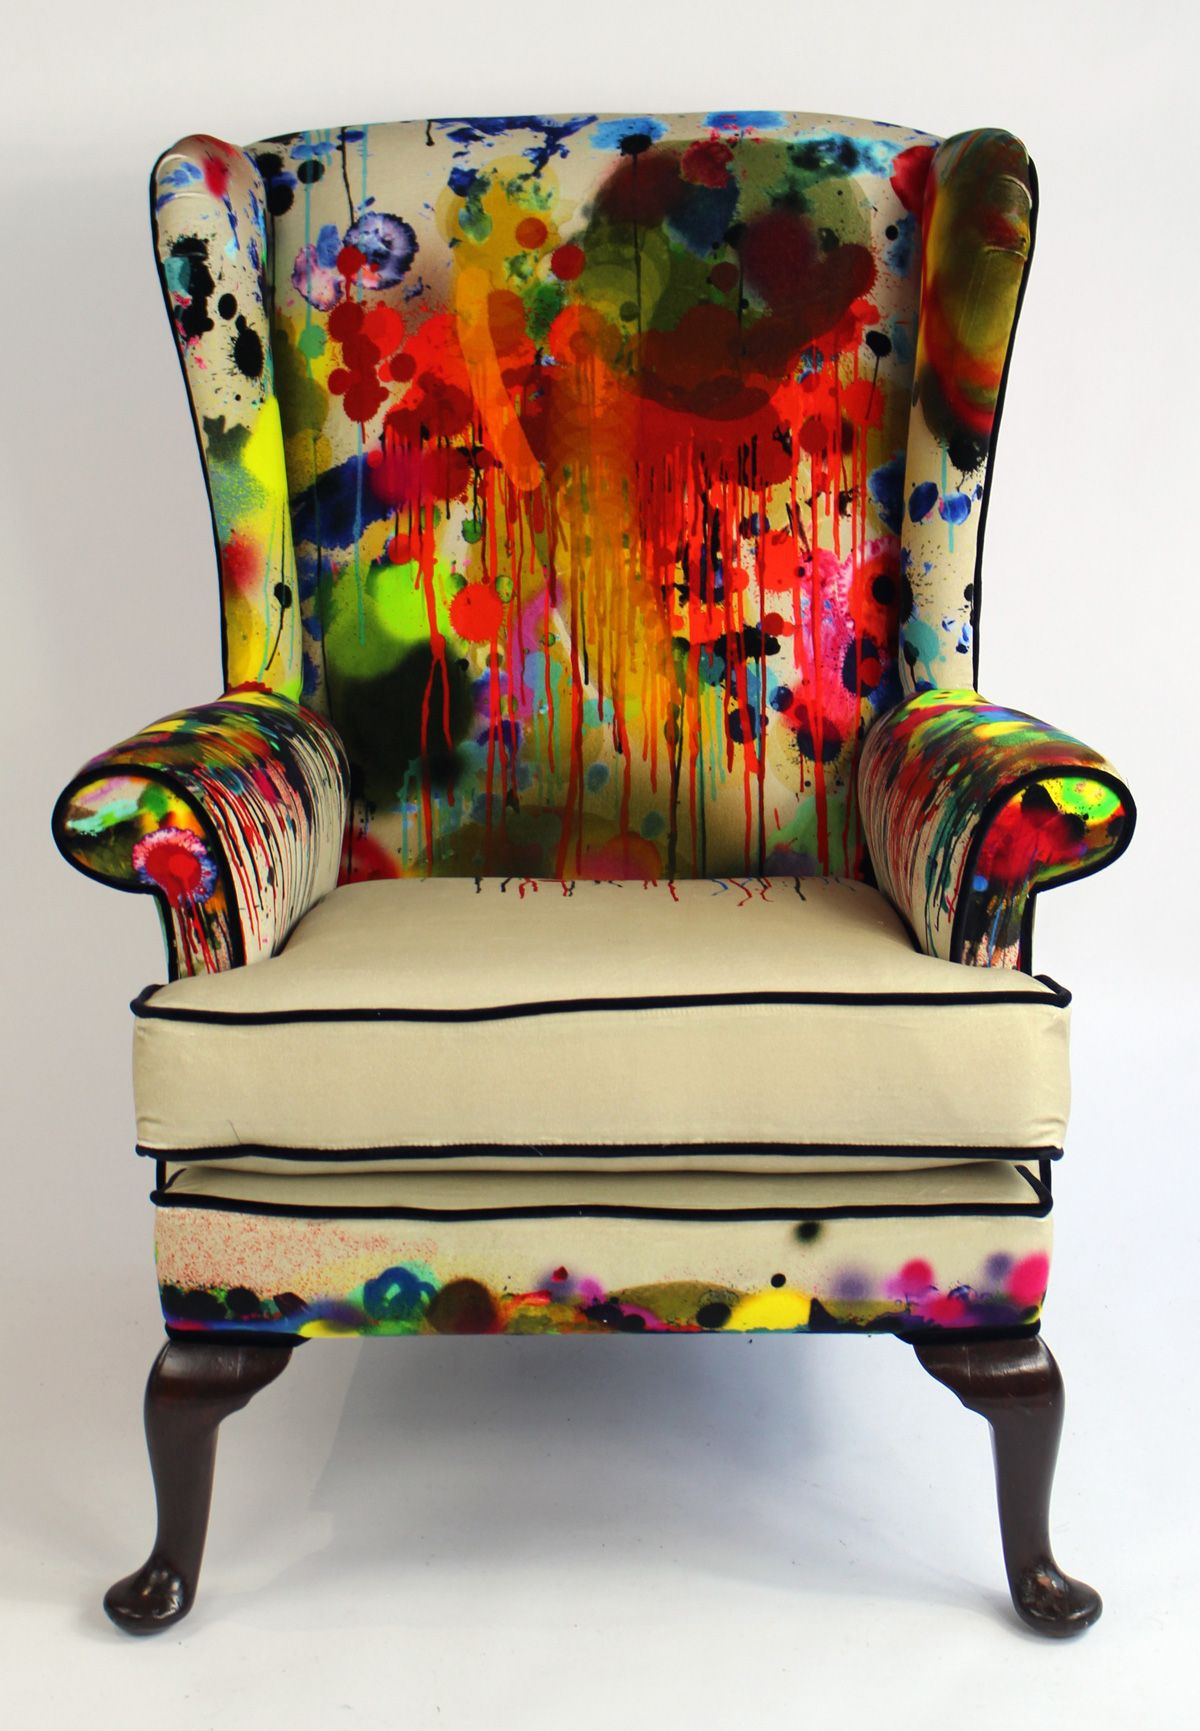 Furniture - Timorous Beasties & Furniture - Timorous Beasties | Bad Ass Artsy Chairs | (mostly ...